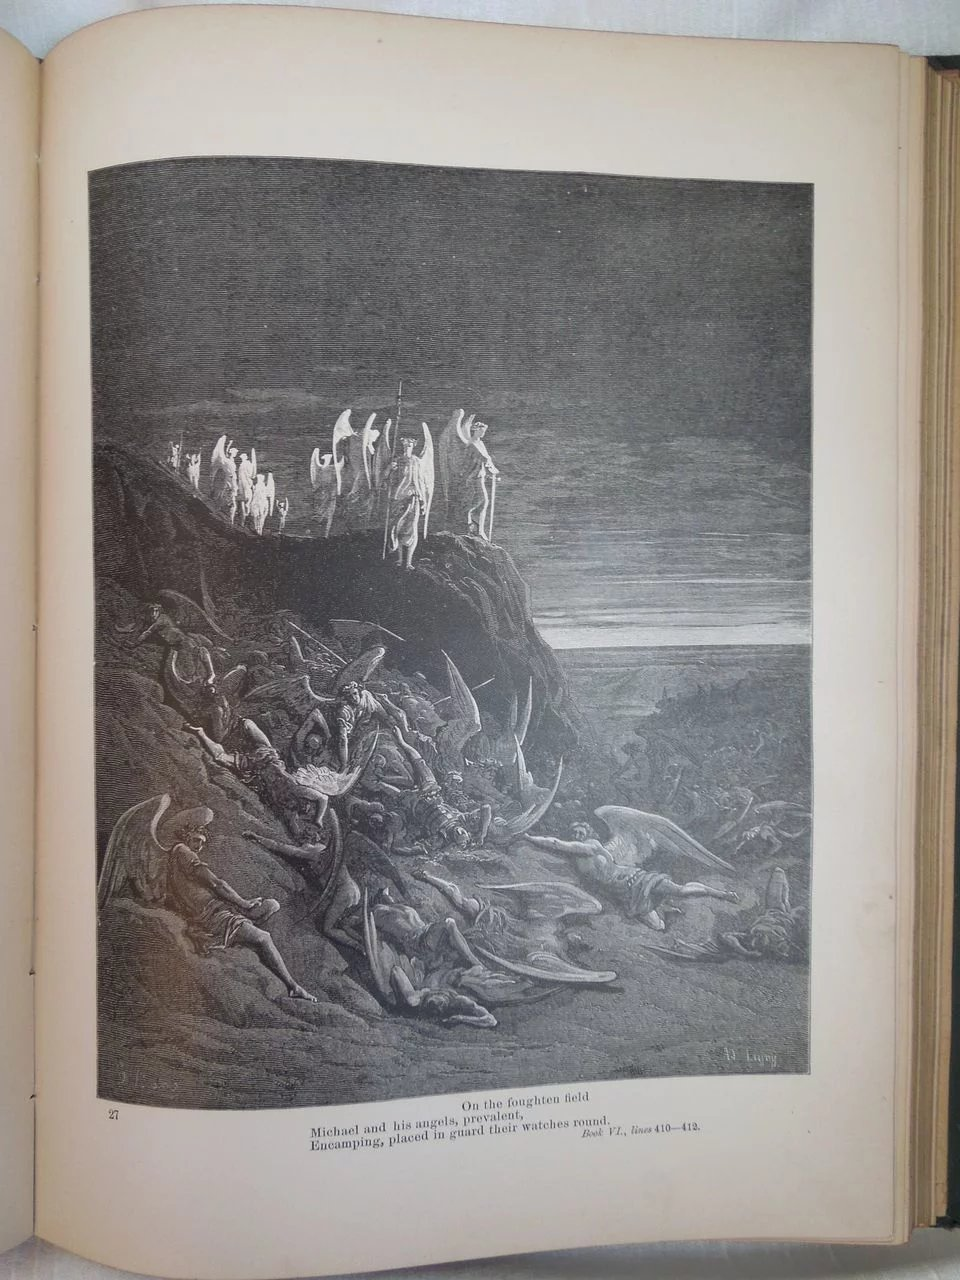 jon milton paradise lost Paradise lost by john milton, david scott kastan and a great selection of similar used, new and collectible books available now at abebookscom.